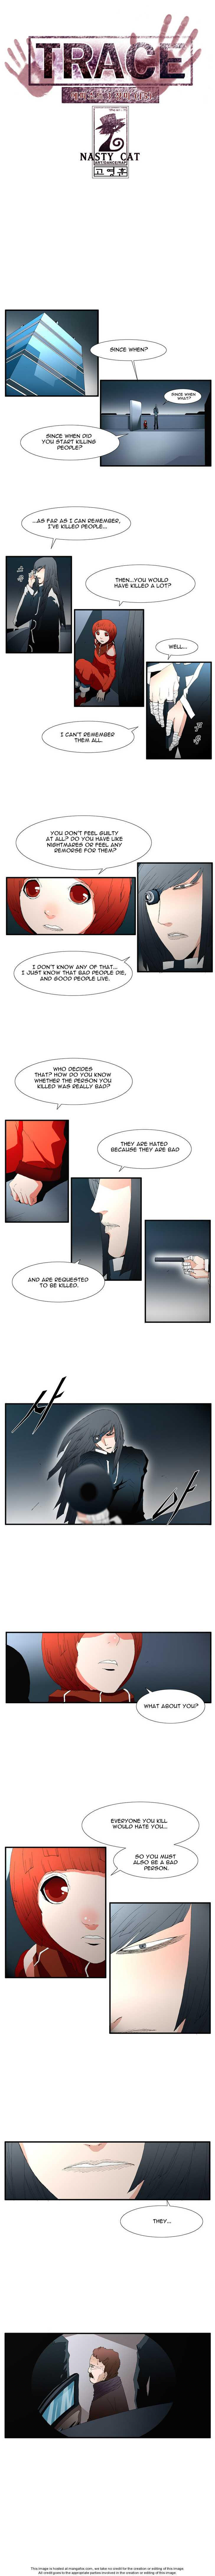 Trace 15 Page 1